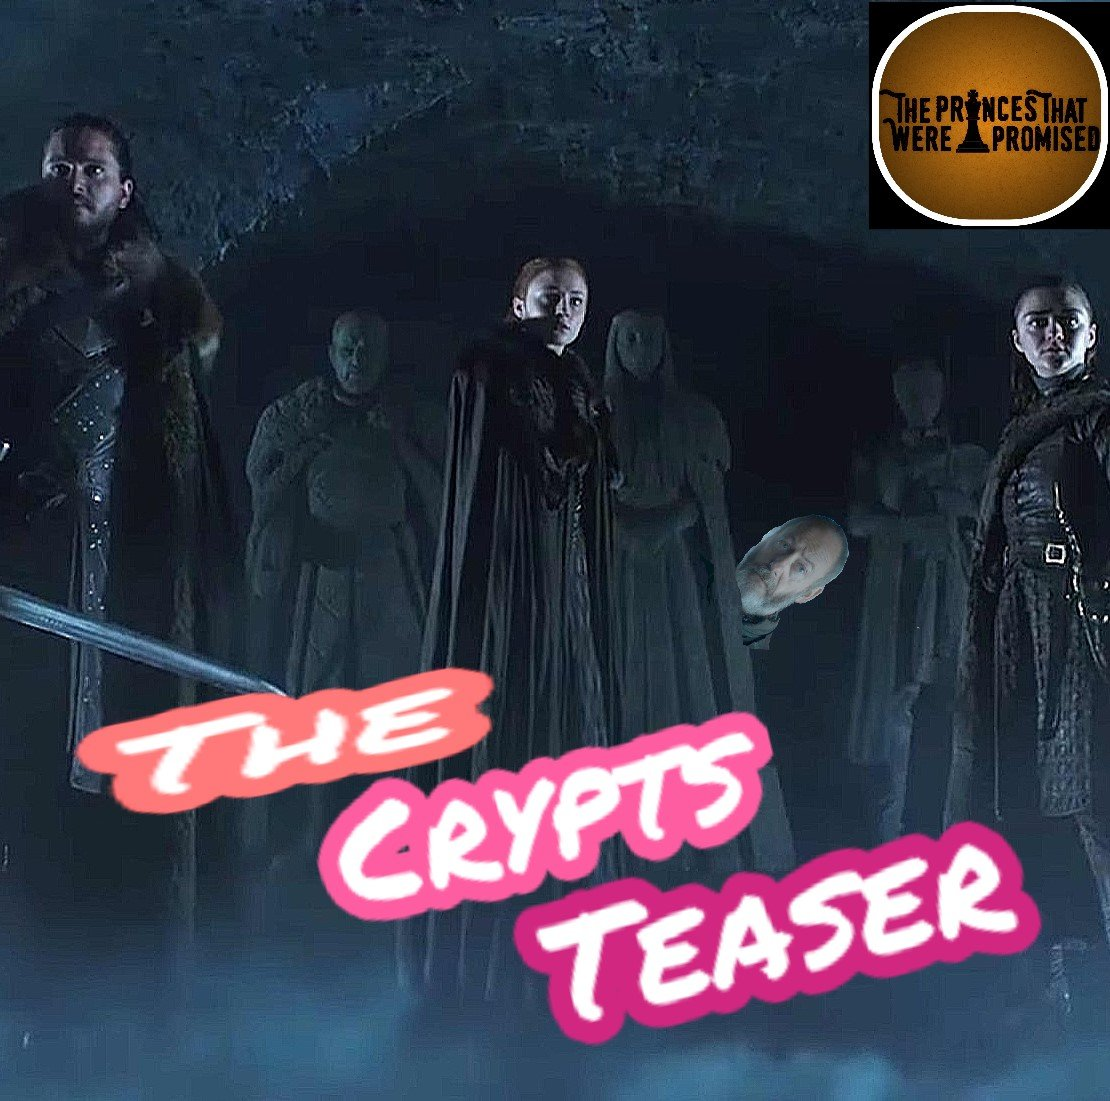 The Crypts Teaser (Sp3.2)